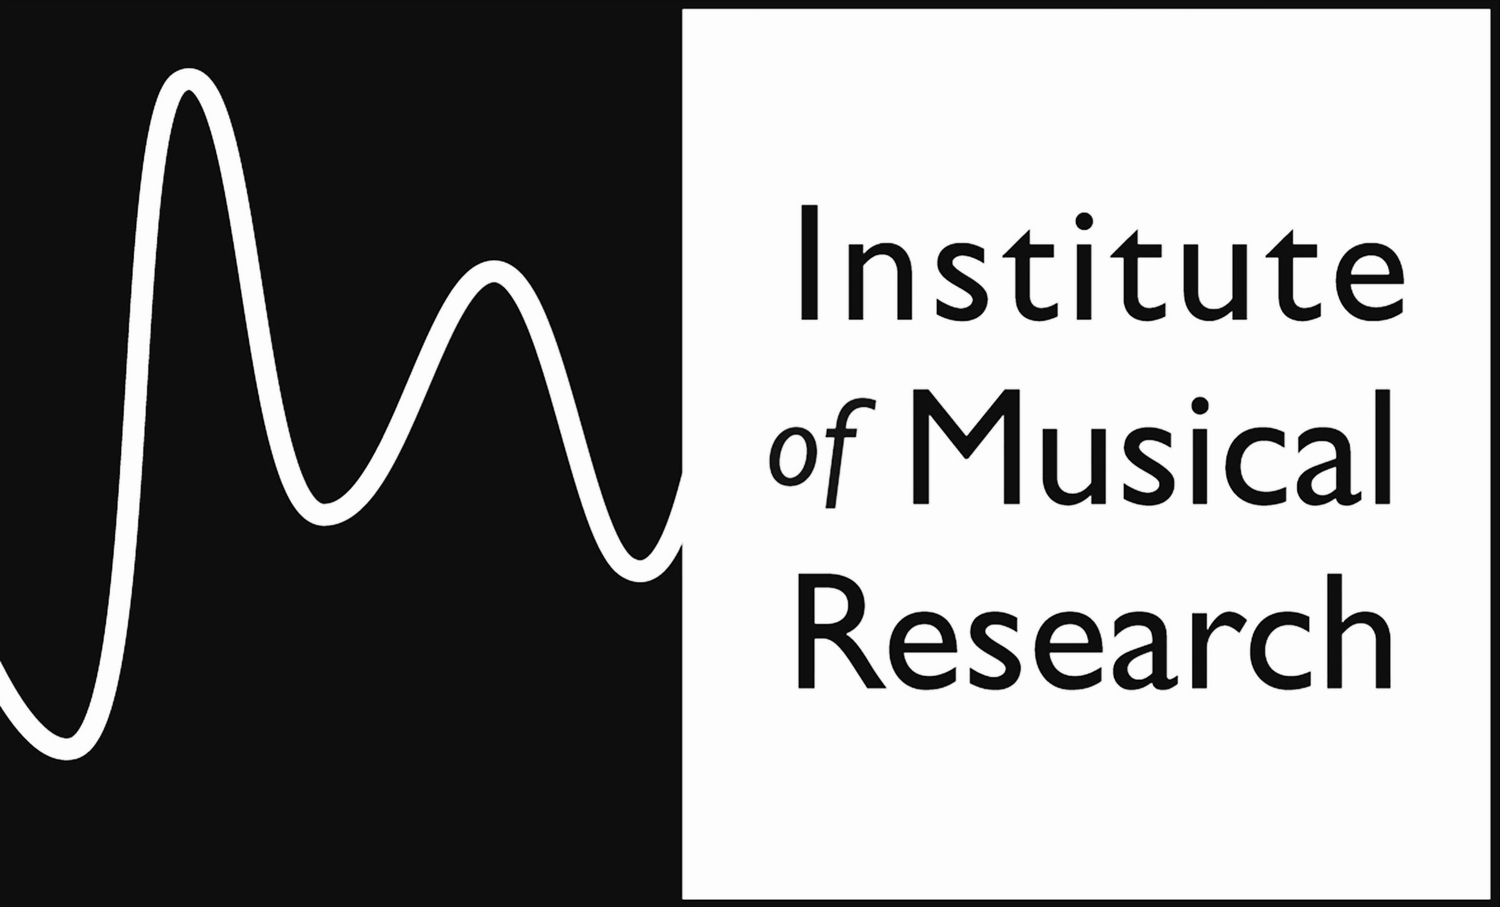 Institute of Musical Research